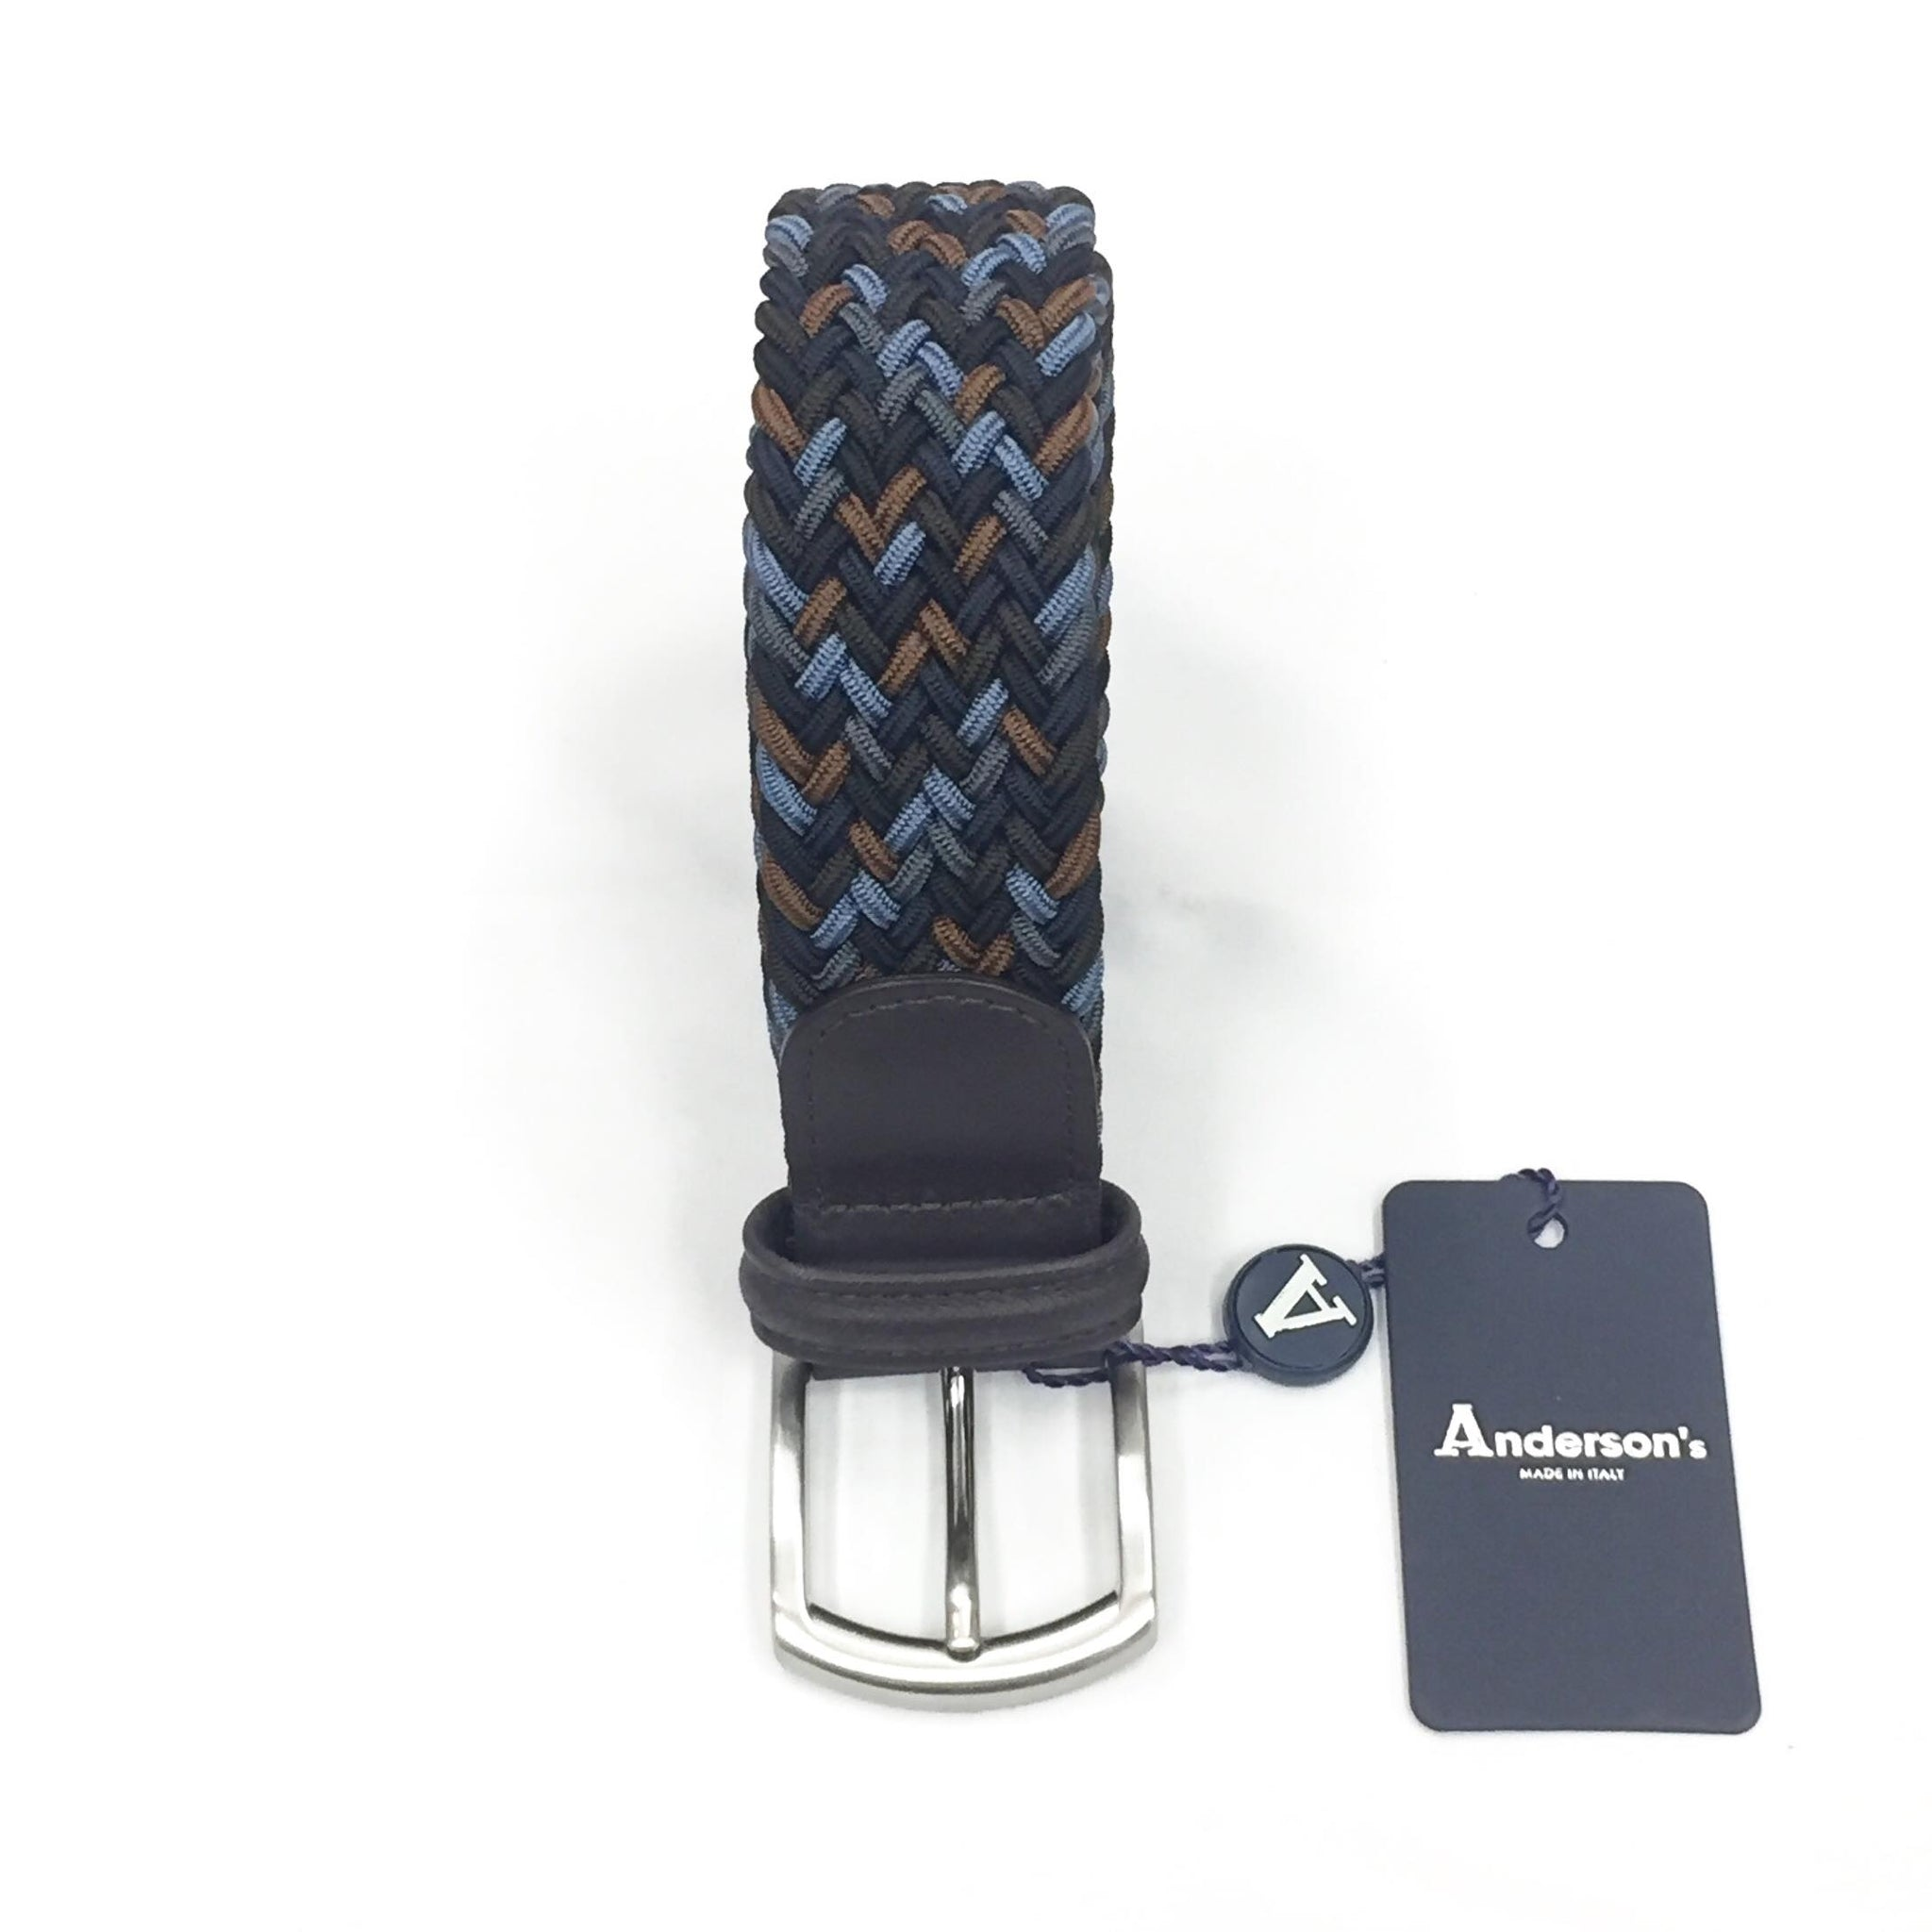 ANDERSON'S CLASSIC MULTICOLOR WOVEN ELASTIC BELT - BLUE / BROWN